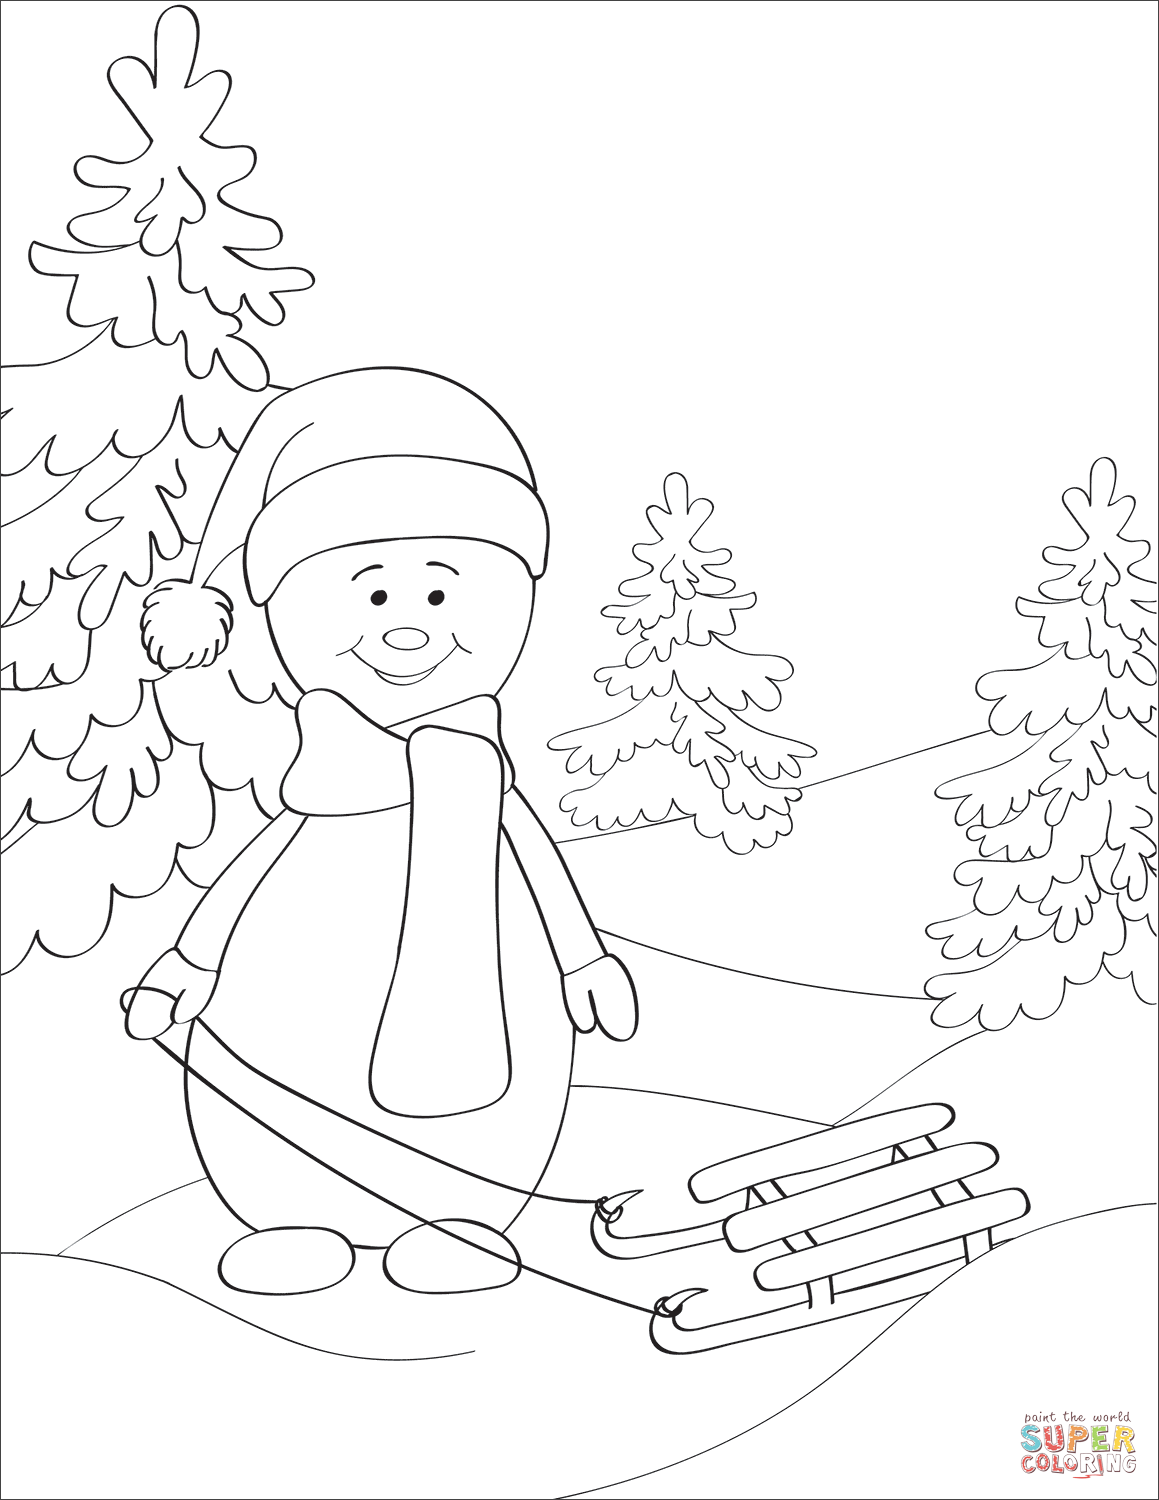 Snowman with Sled coloring page | Free Printable Coloring Pages